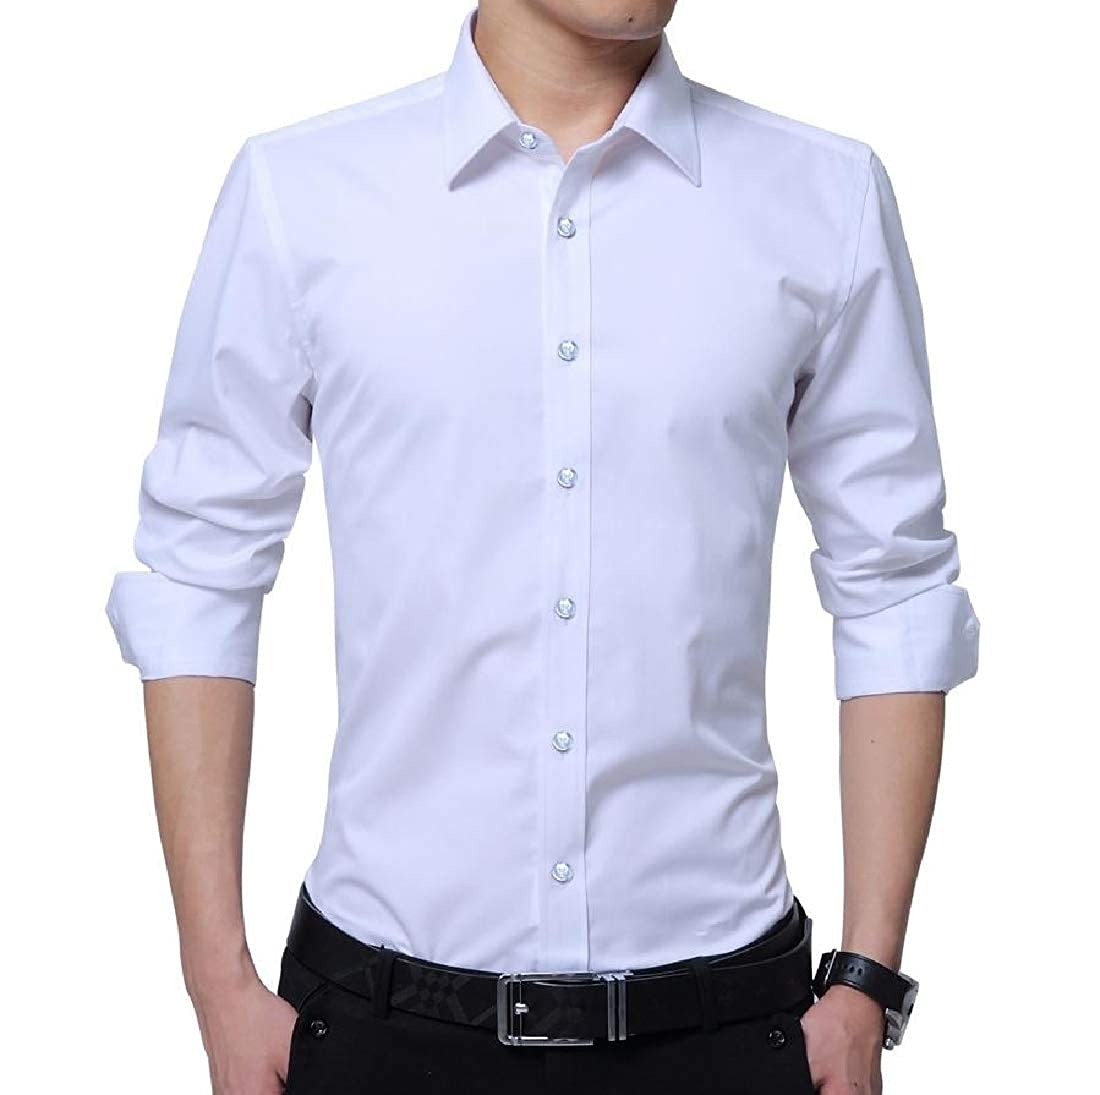 YUNY Mens Business Plus Size Tops Solid Colored Classic Sport Shirt White 3XL